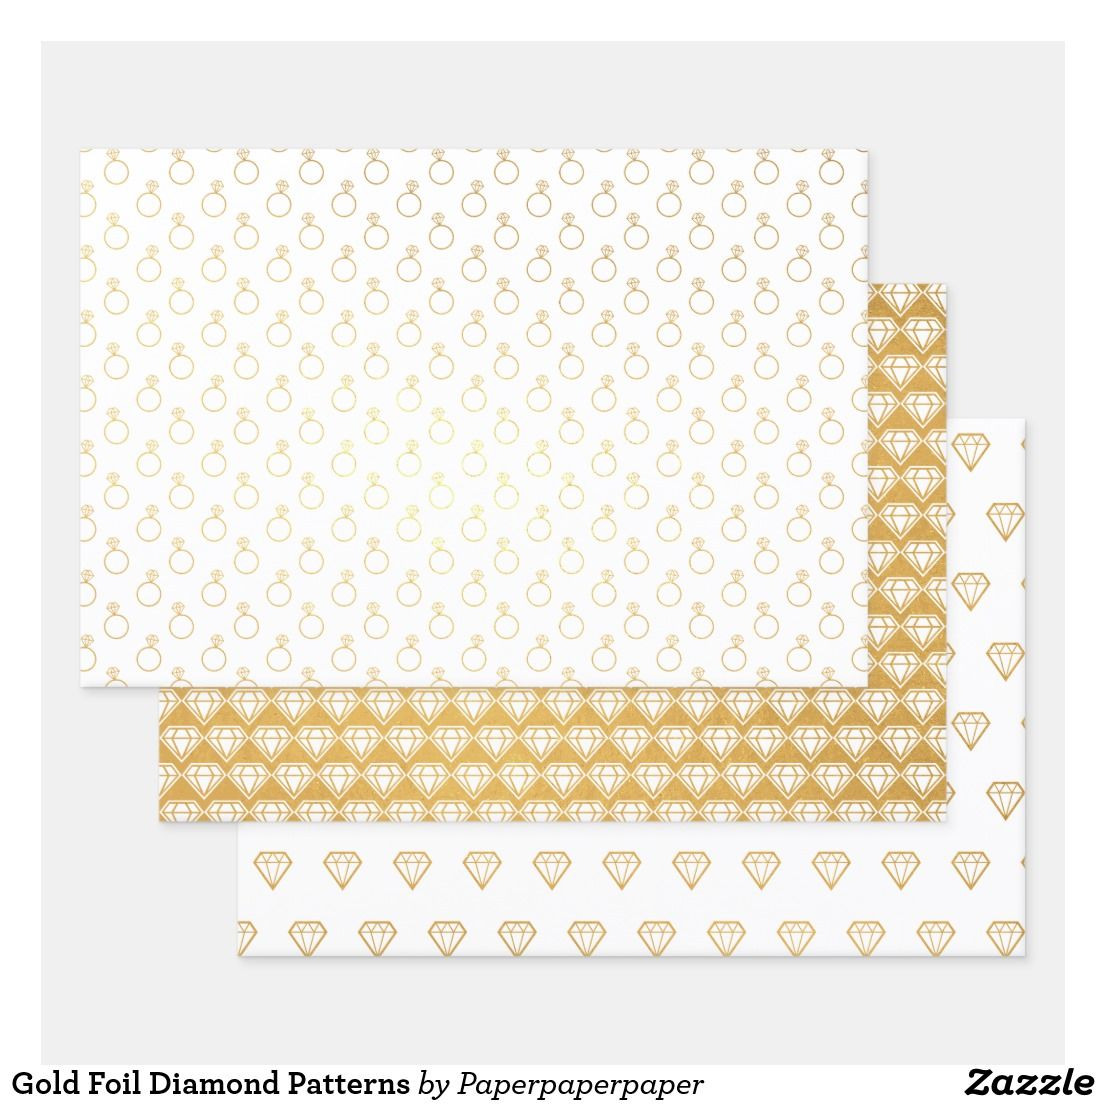 Gold Foil Diamond Patterns Foil Wrapping Paper Sheets Zazzle Com Wrapping Paper Sheets Wrapping Paper Creative Gift Wrapping